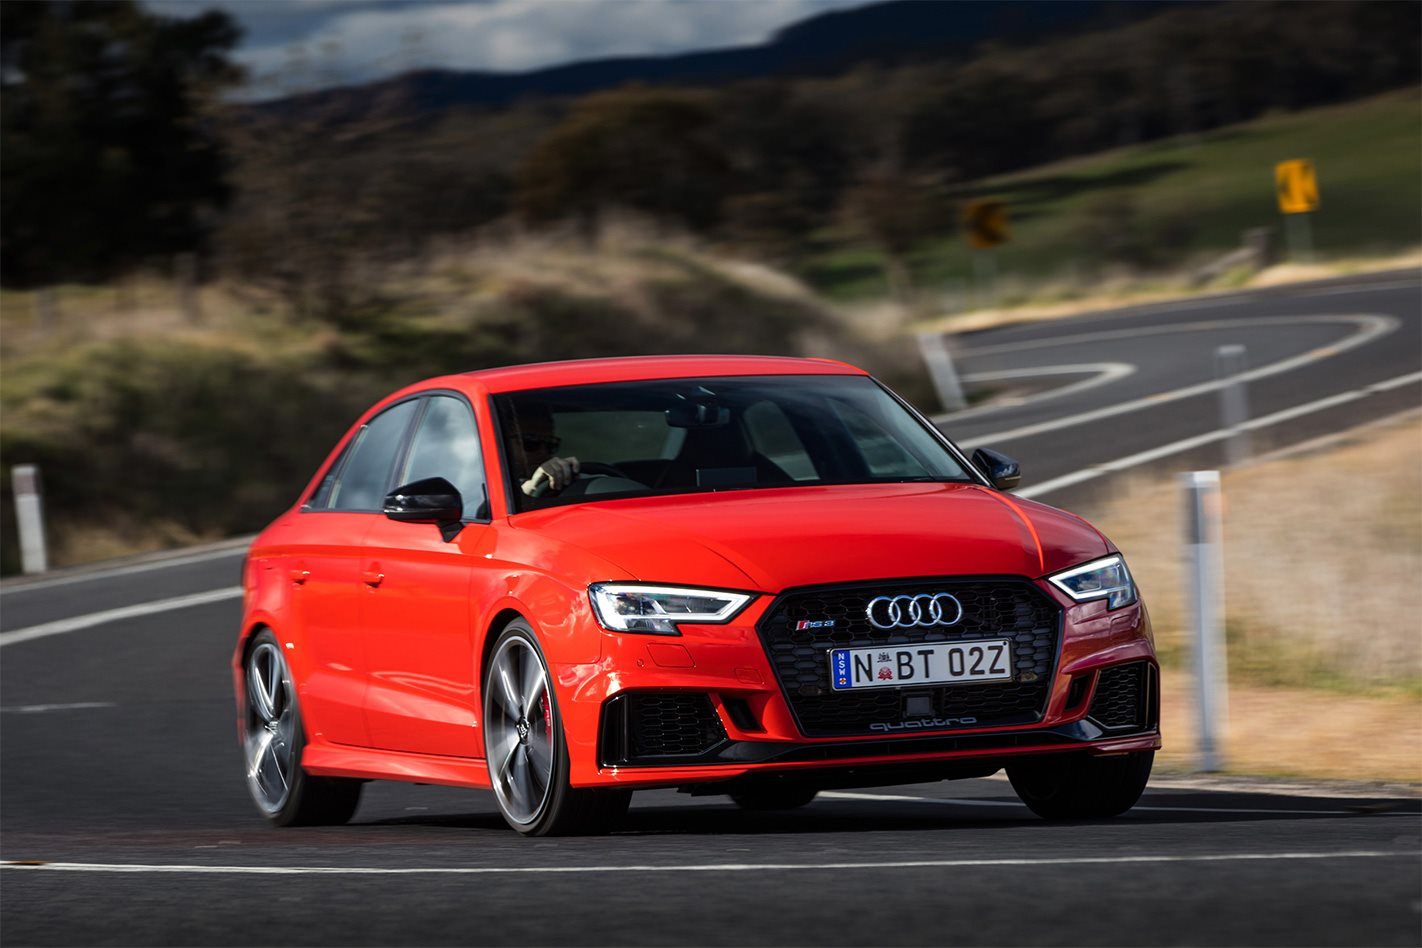 2017 Audi Rs3 Sedan Review Price And Specs